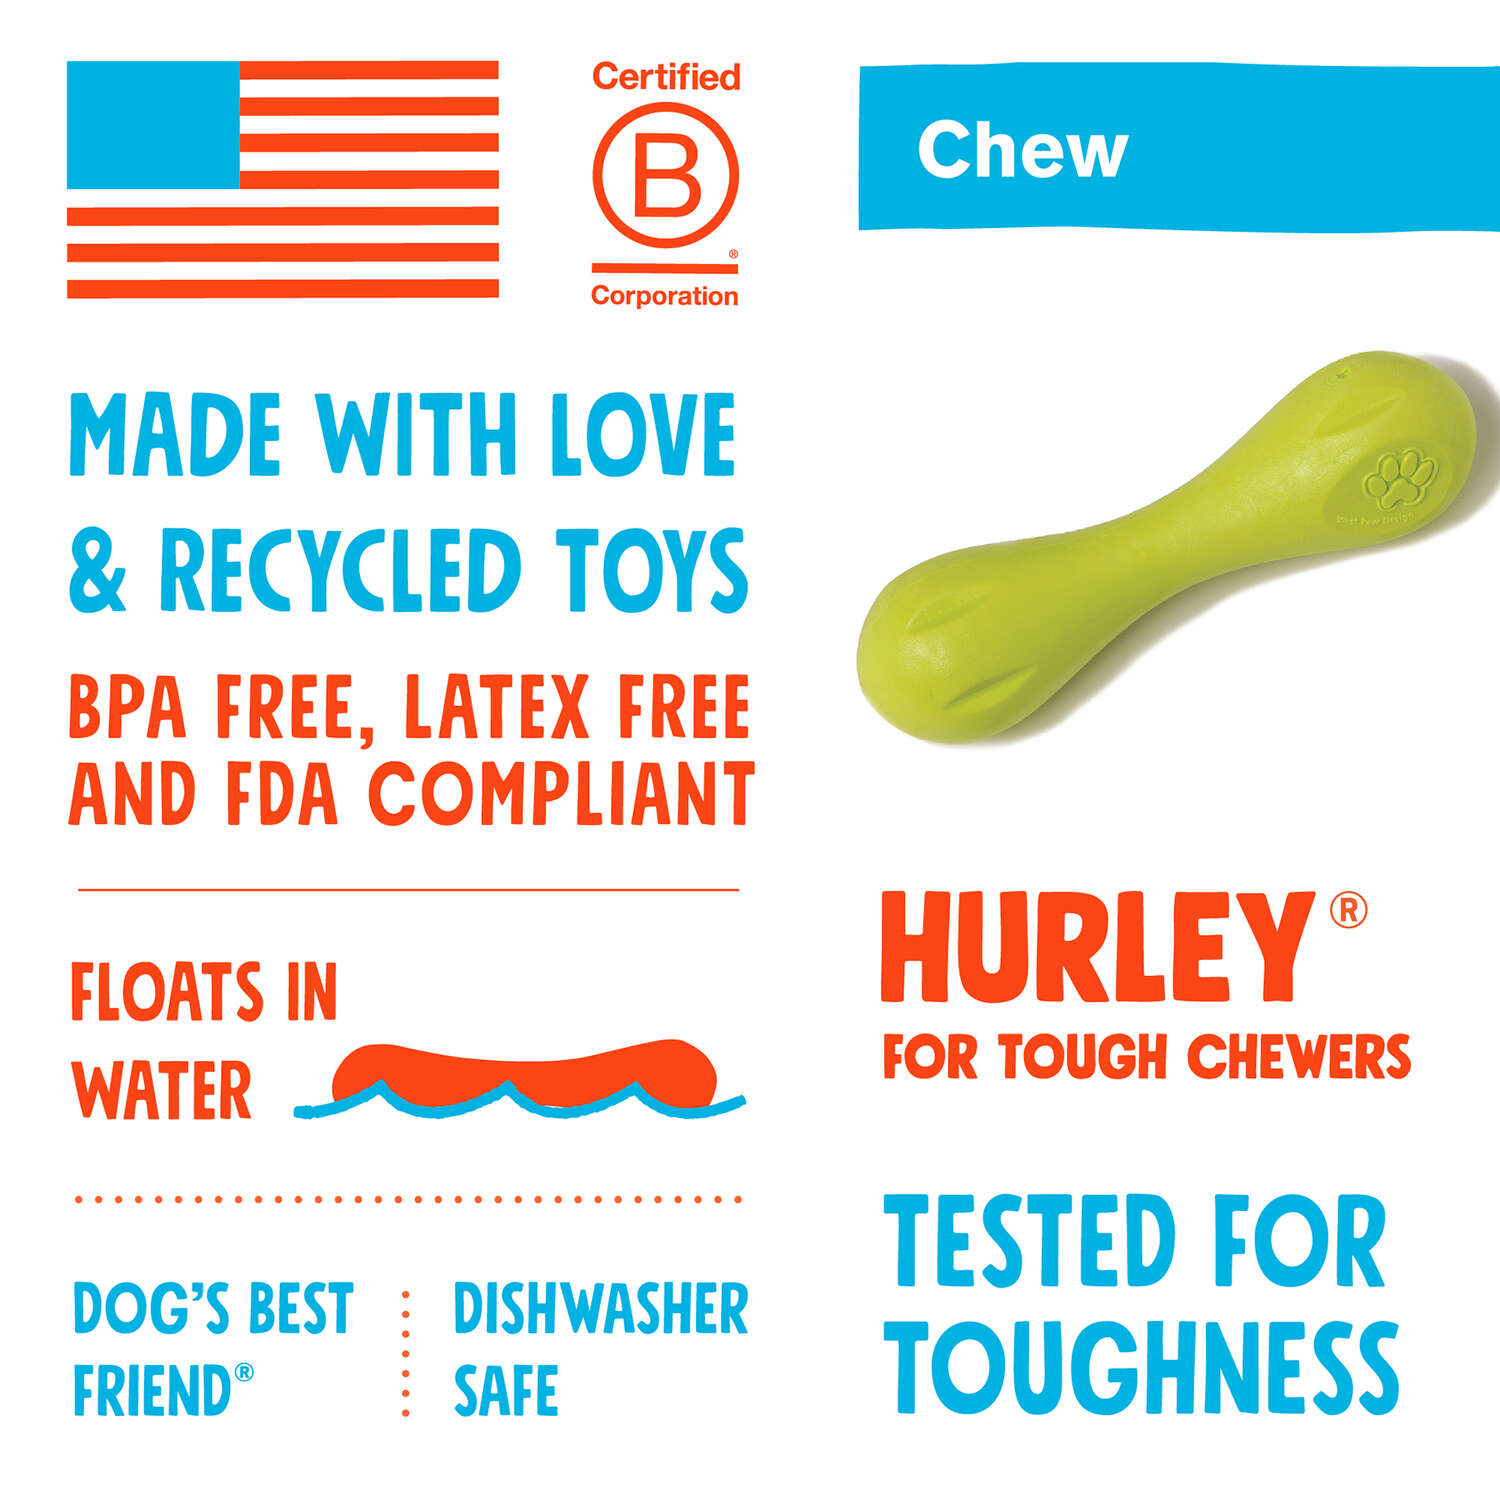 West Paw  Zogoflex  Orange  Hurley Bone  Chew Dog Toy  Large  Synthetic Rubber